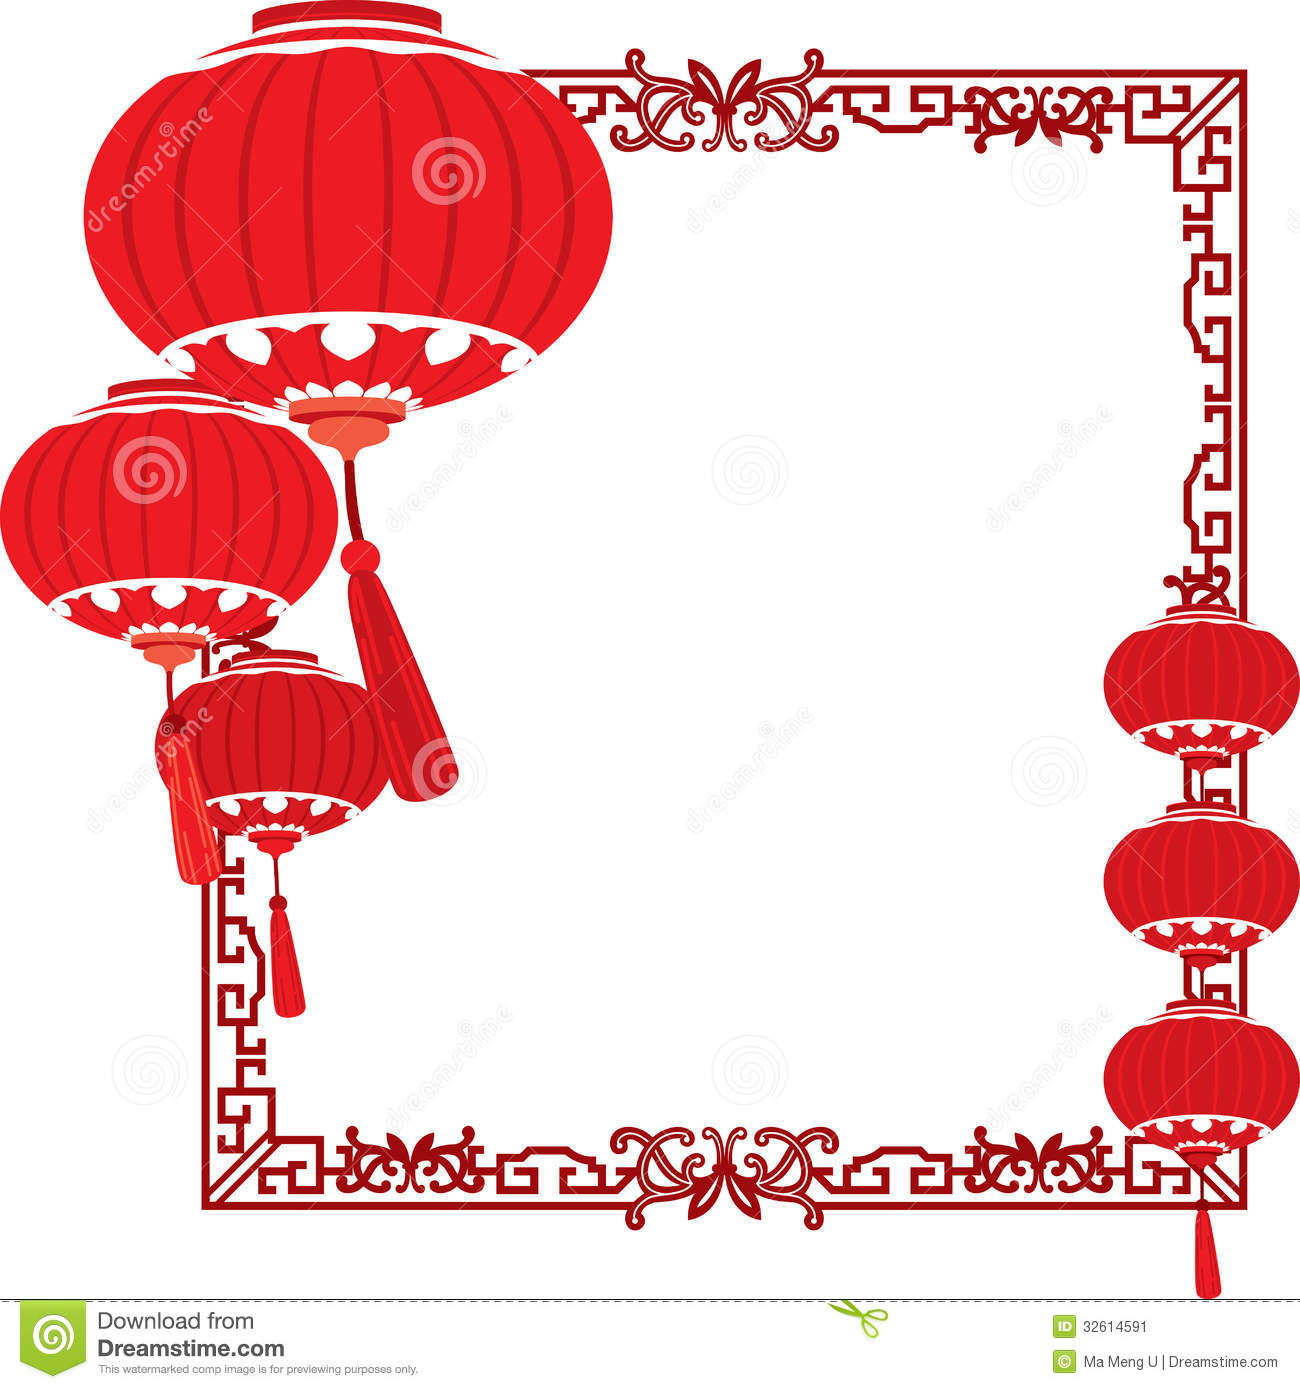 China clipart chinese frame Decorations chinese red red Meng